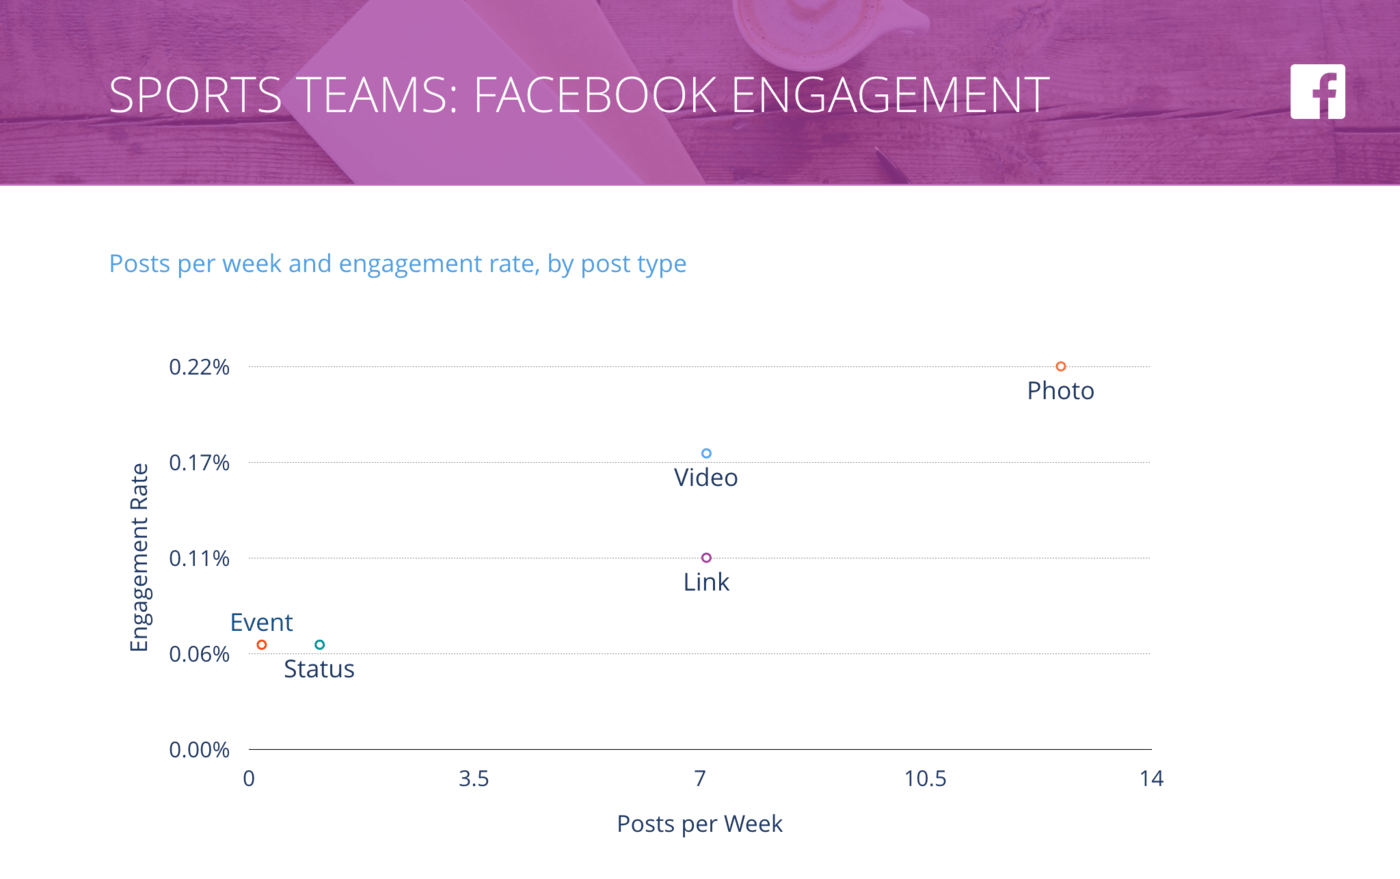 slide for Facebook Posts per Week vs. Engagement Rate per Post, Sports Teams